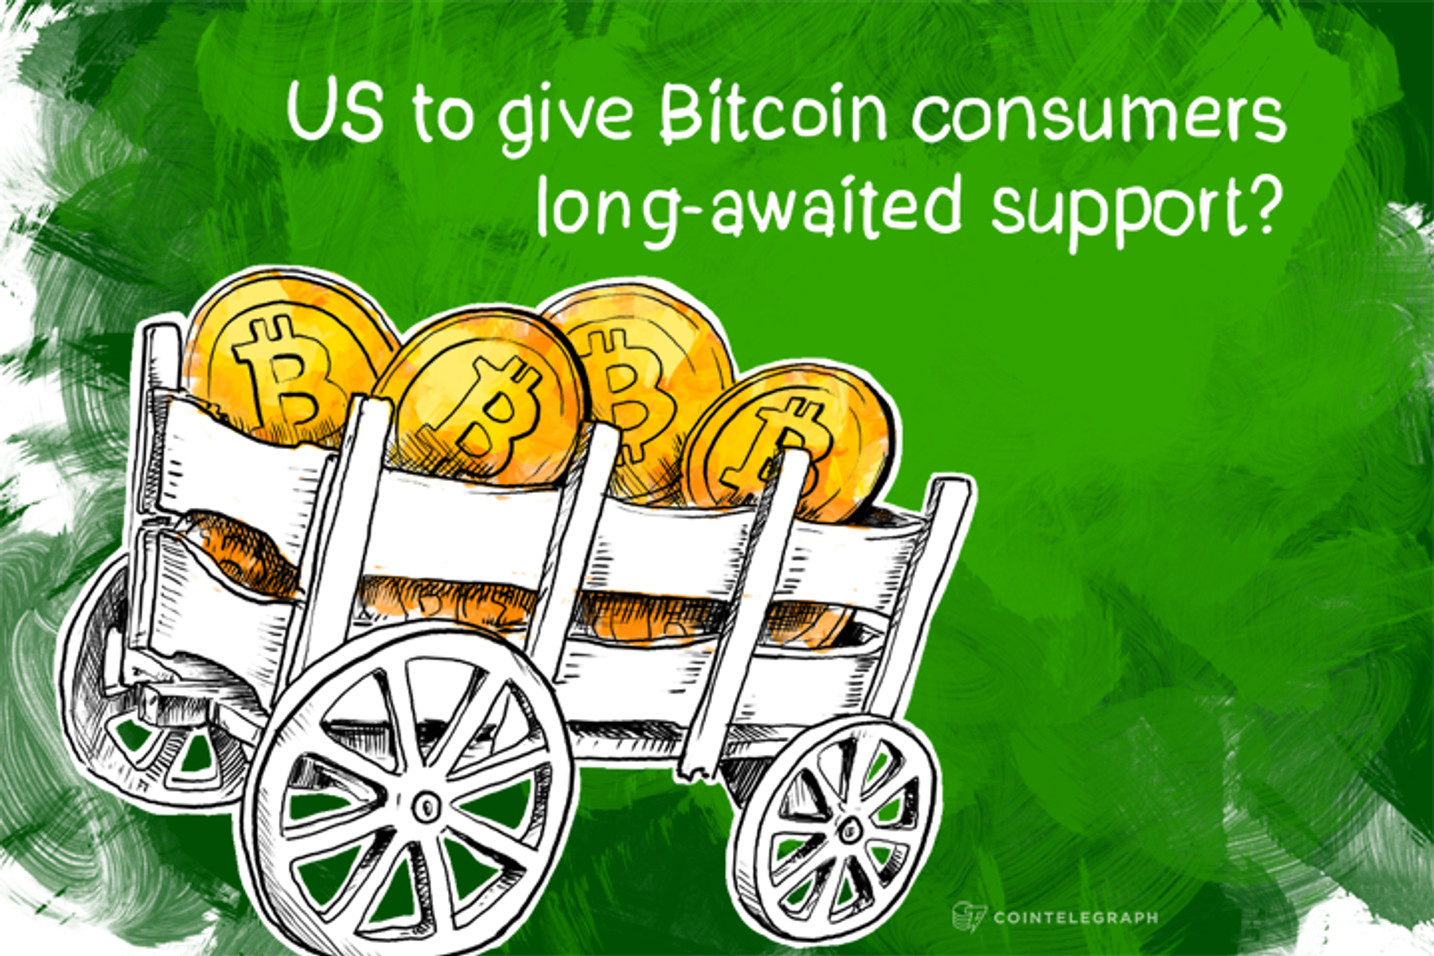 US to give Bitcoin consumers long-awaited support?